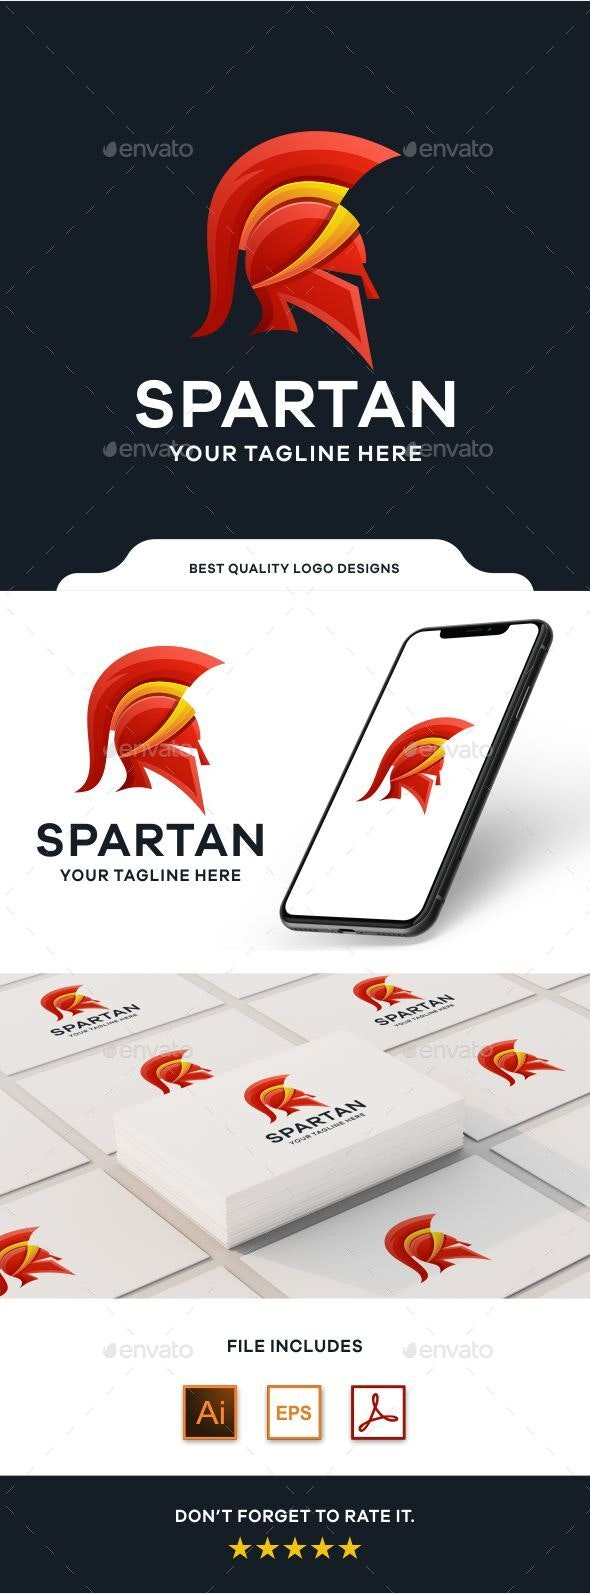 Spartan Gradient Colorful Logo Template - Abstract Logo Templates